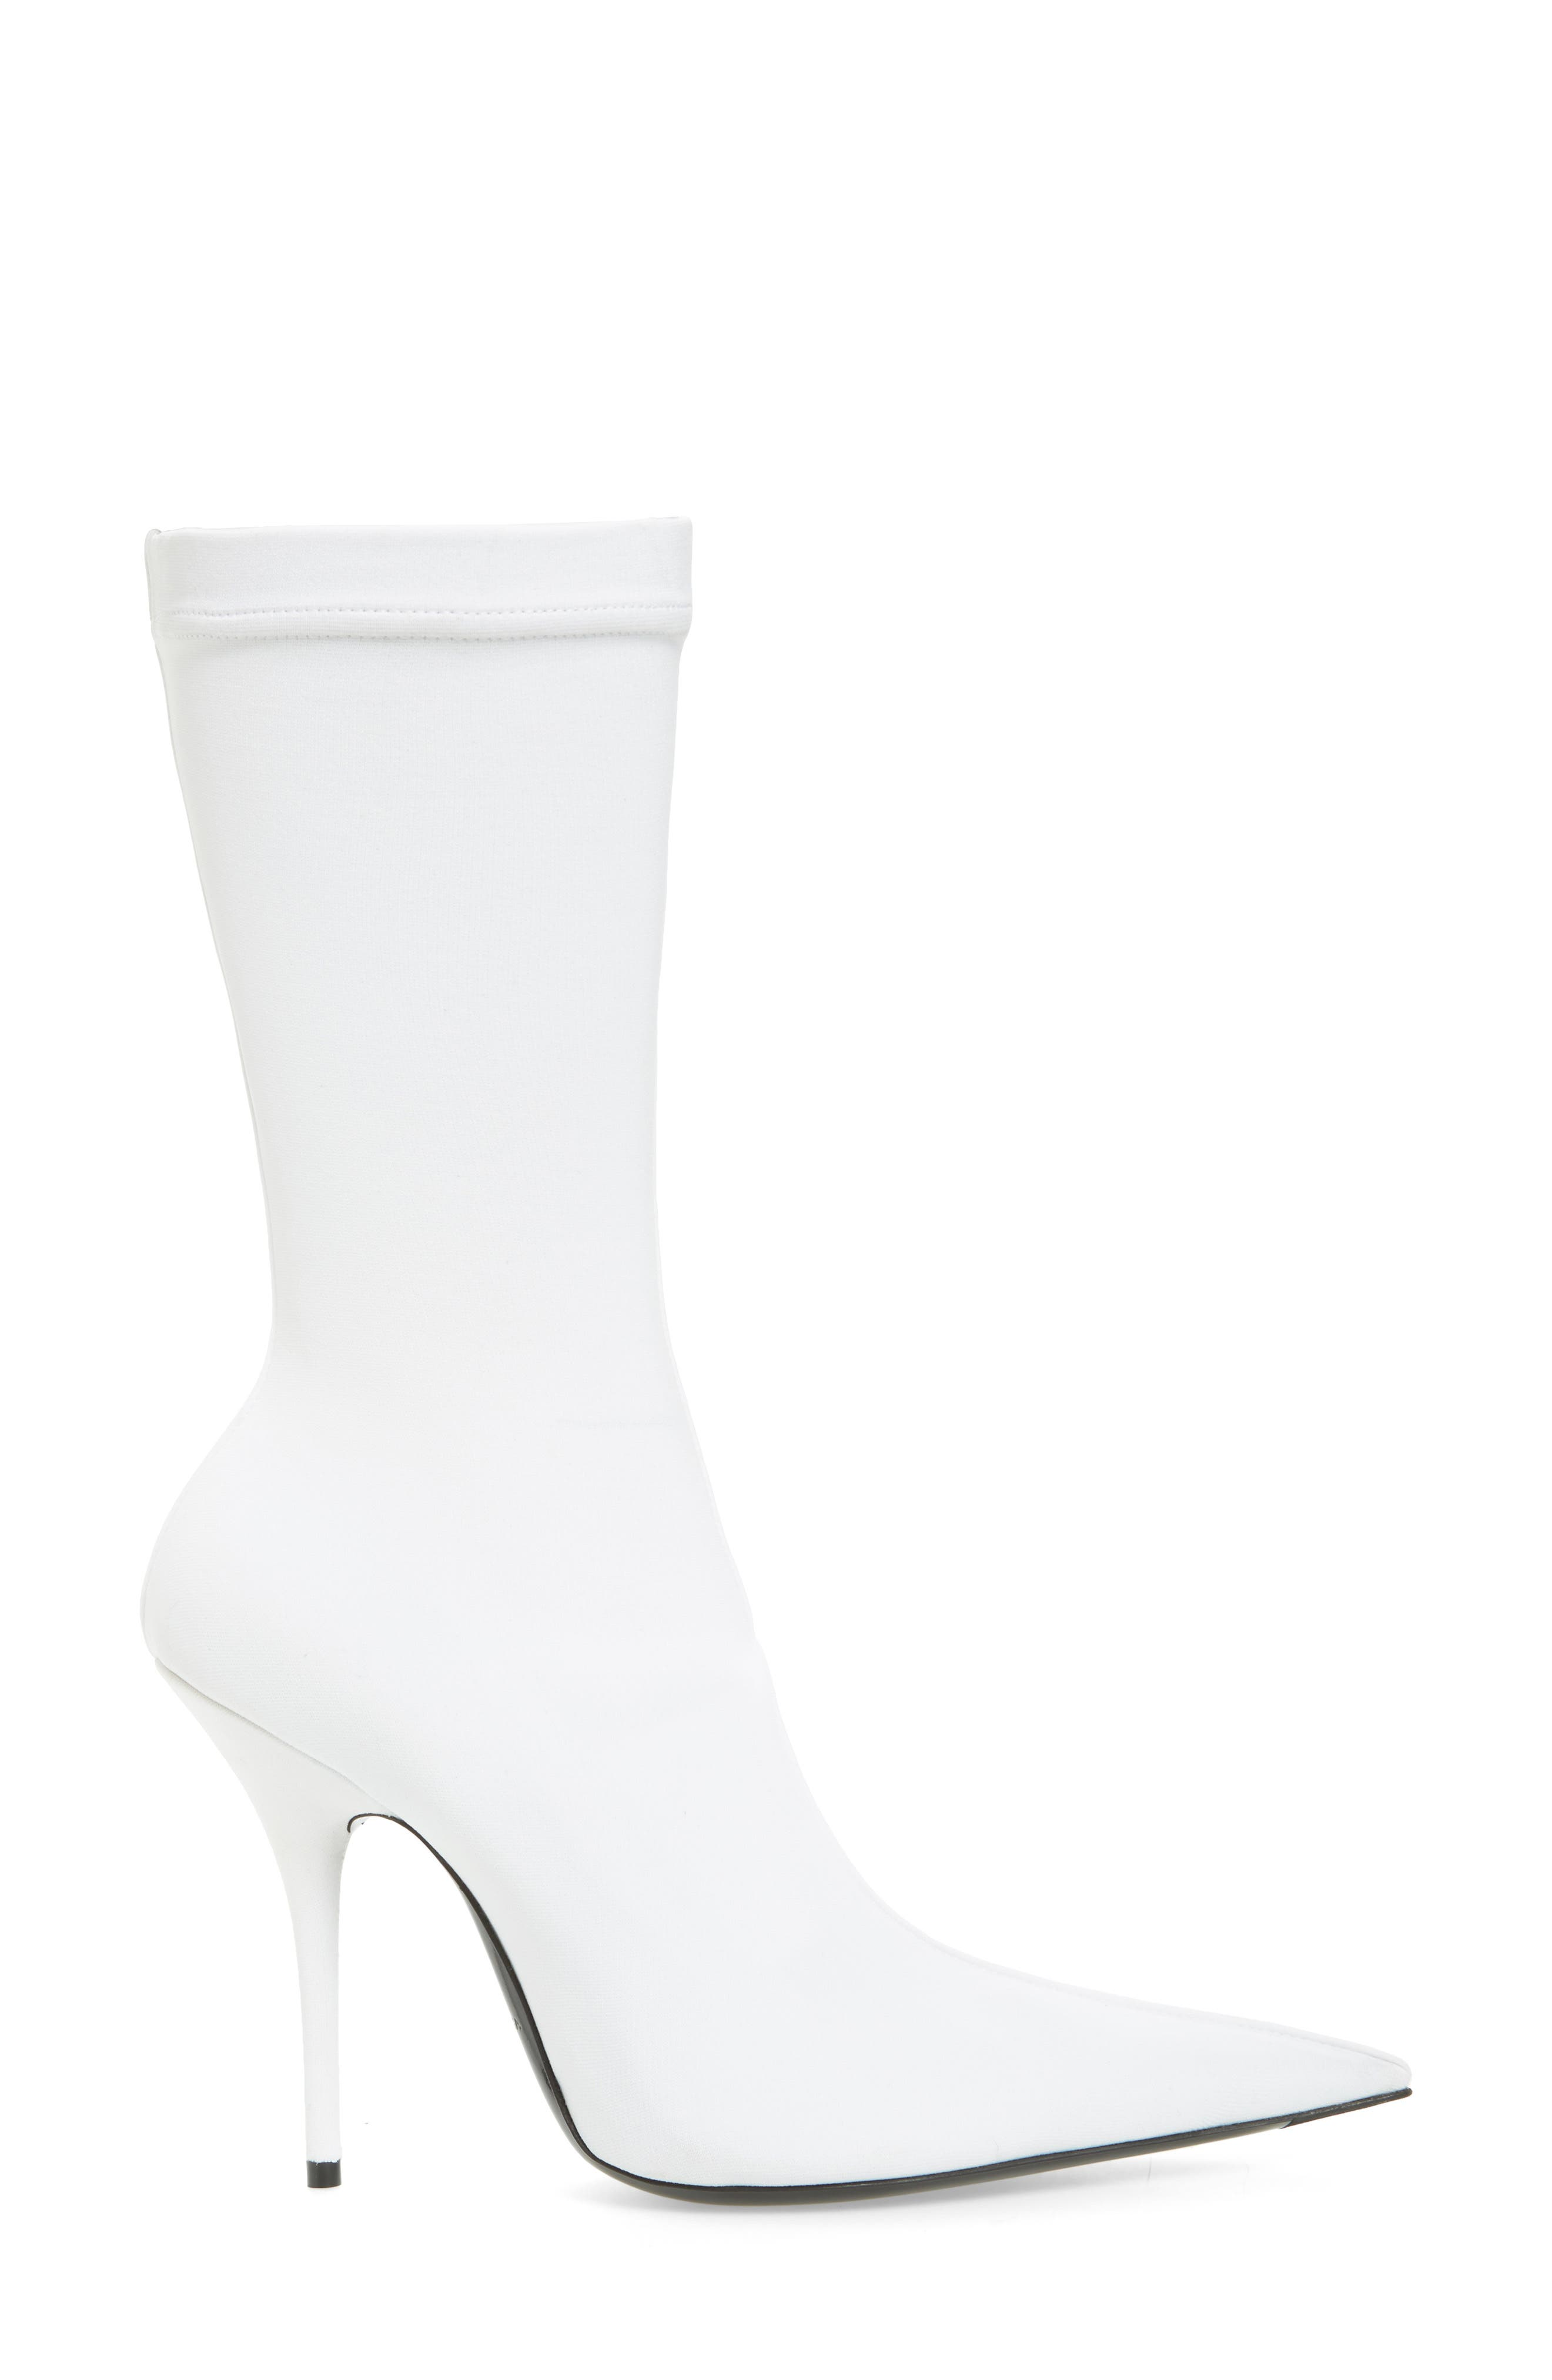 Alternate Image 3  - Balenciaga Pointy Toe Mid Boot (Women)